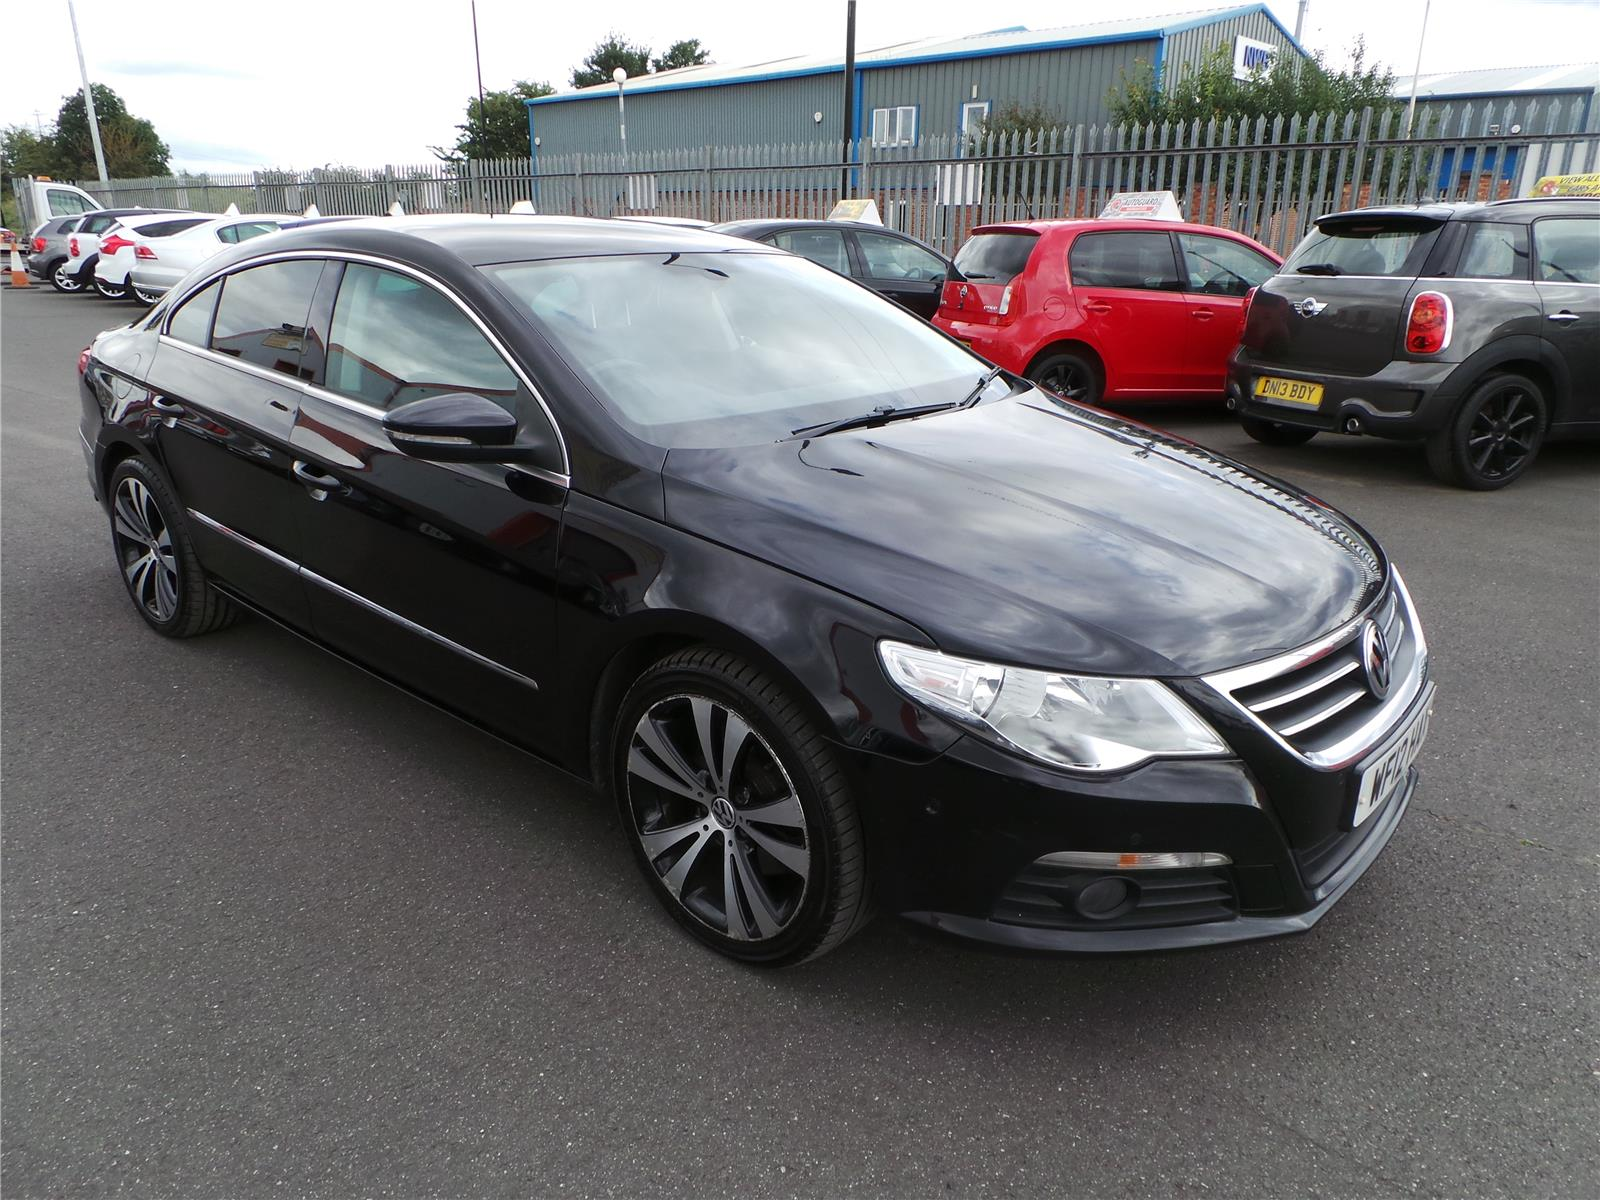 2012 Volkswagen Passat CC GT Bluemotion 1968 Diesel Automatic 6 Speed 4 Door Coupe